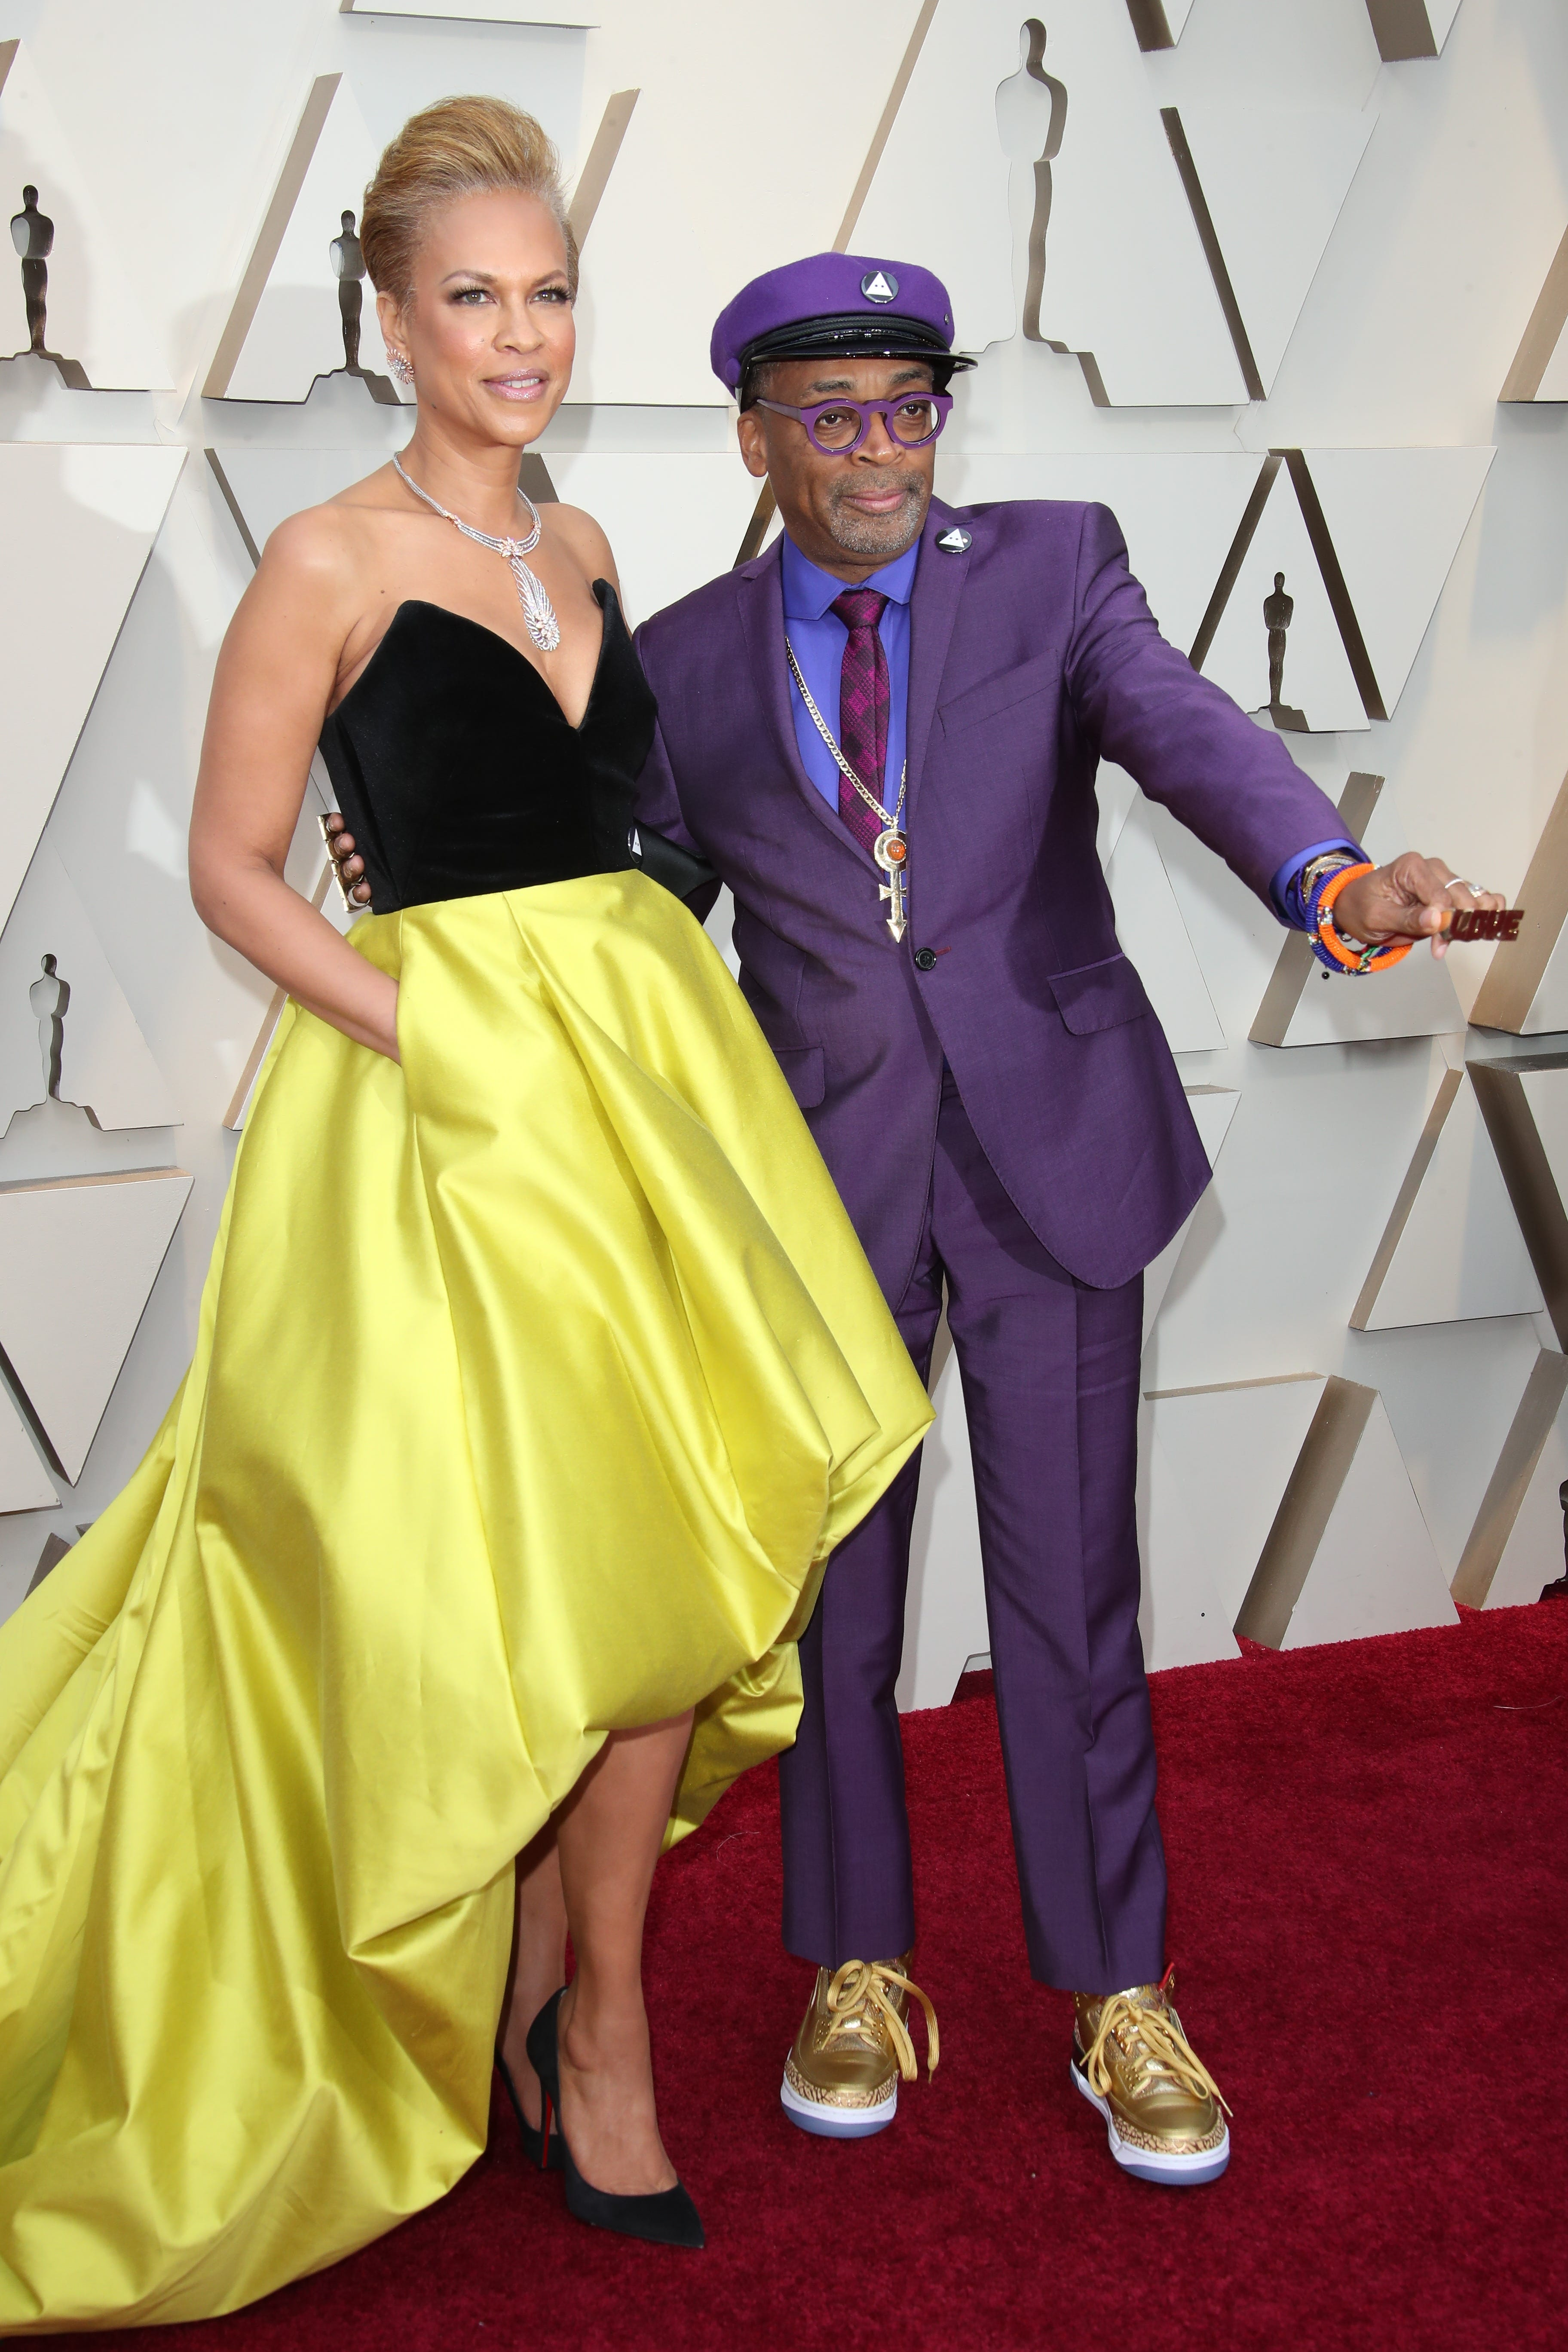 February 24, 2019; Los Angeles, CA, USA; Tonya Lewis Lee, left and Spike Lee arrive at the 91st Academy Awards at the Dolby Theatre. Mandatory Credit: Dan MacMedan-USA TODAY NETWORK (Via OlyDrop)